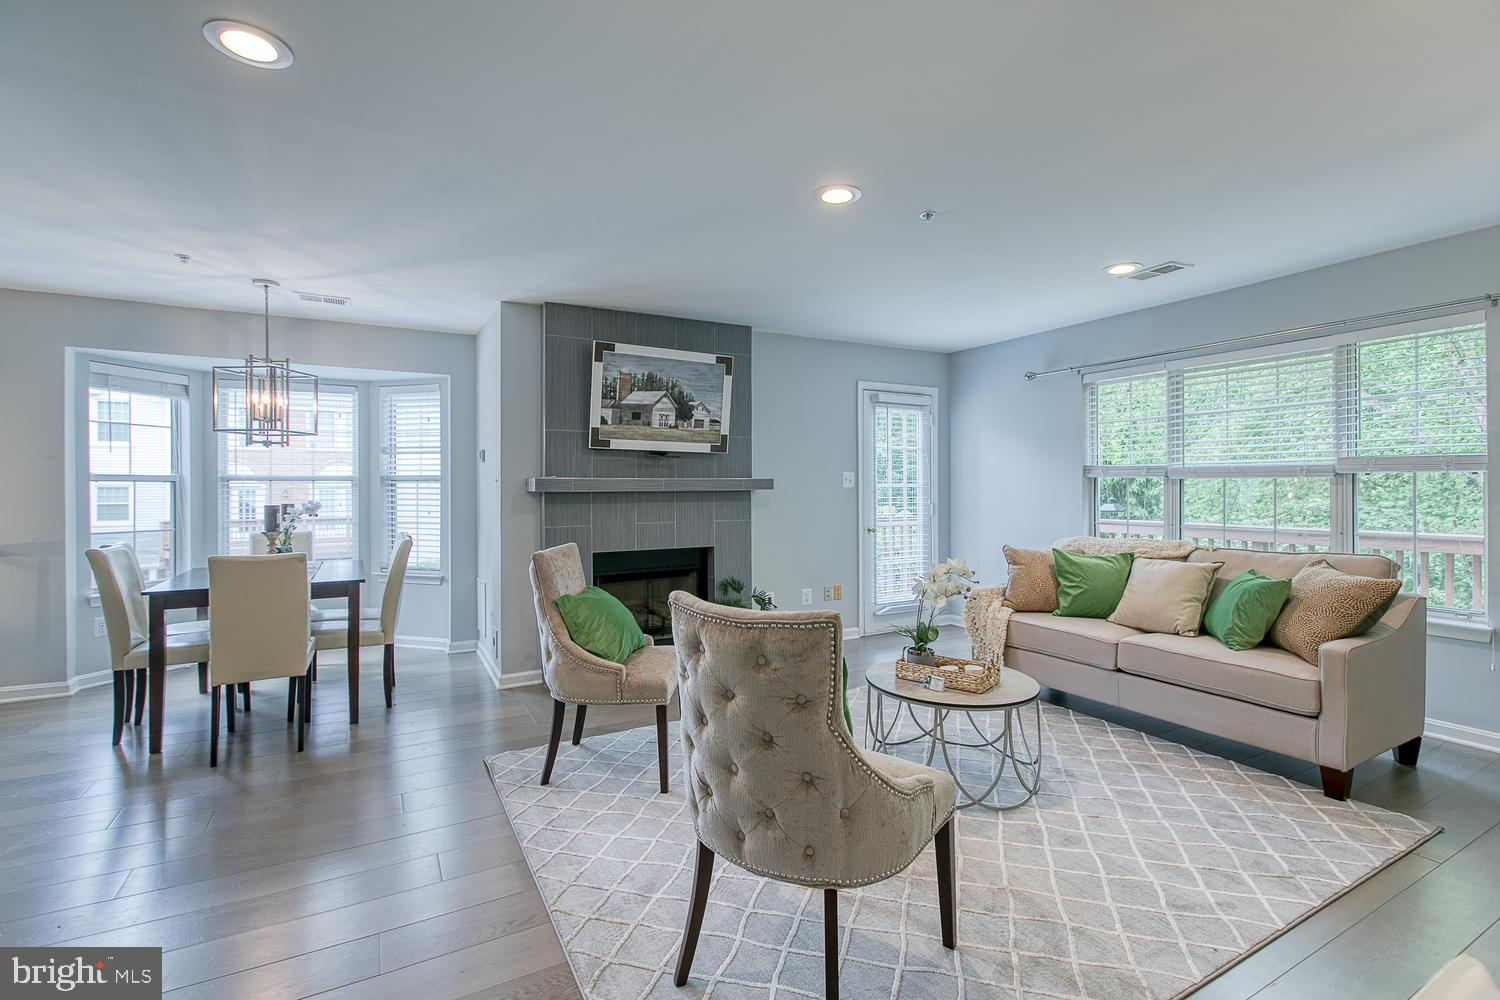 Renovated and Amazing Carriage Park home! Beautiful end-unit Townhome in Carriage Park! This 3BR/3.5